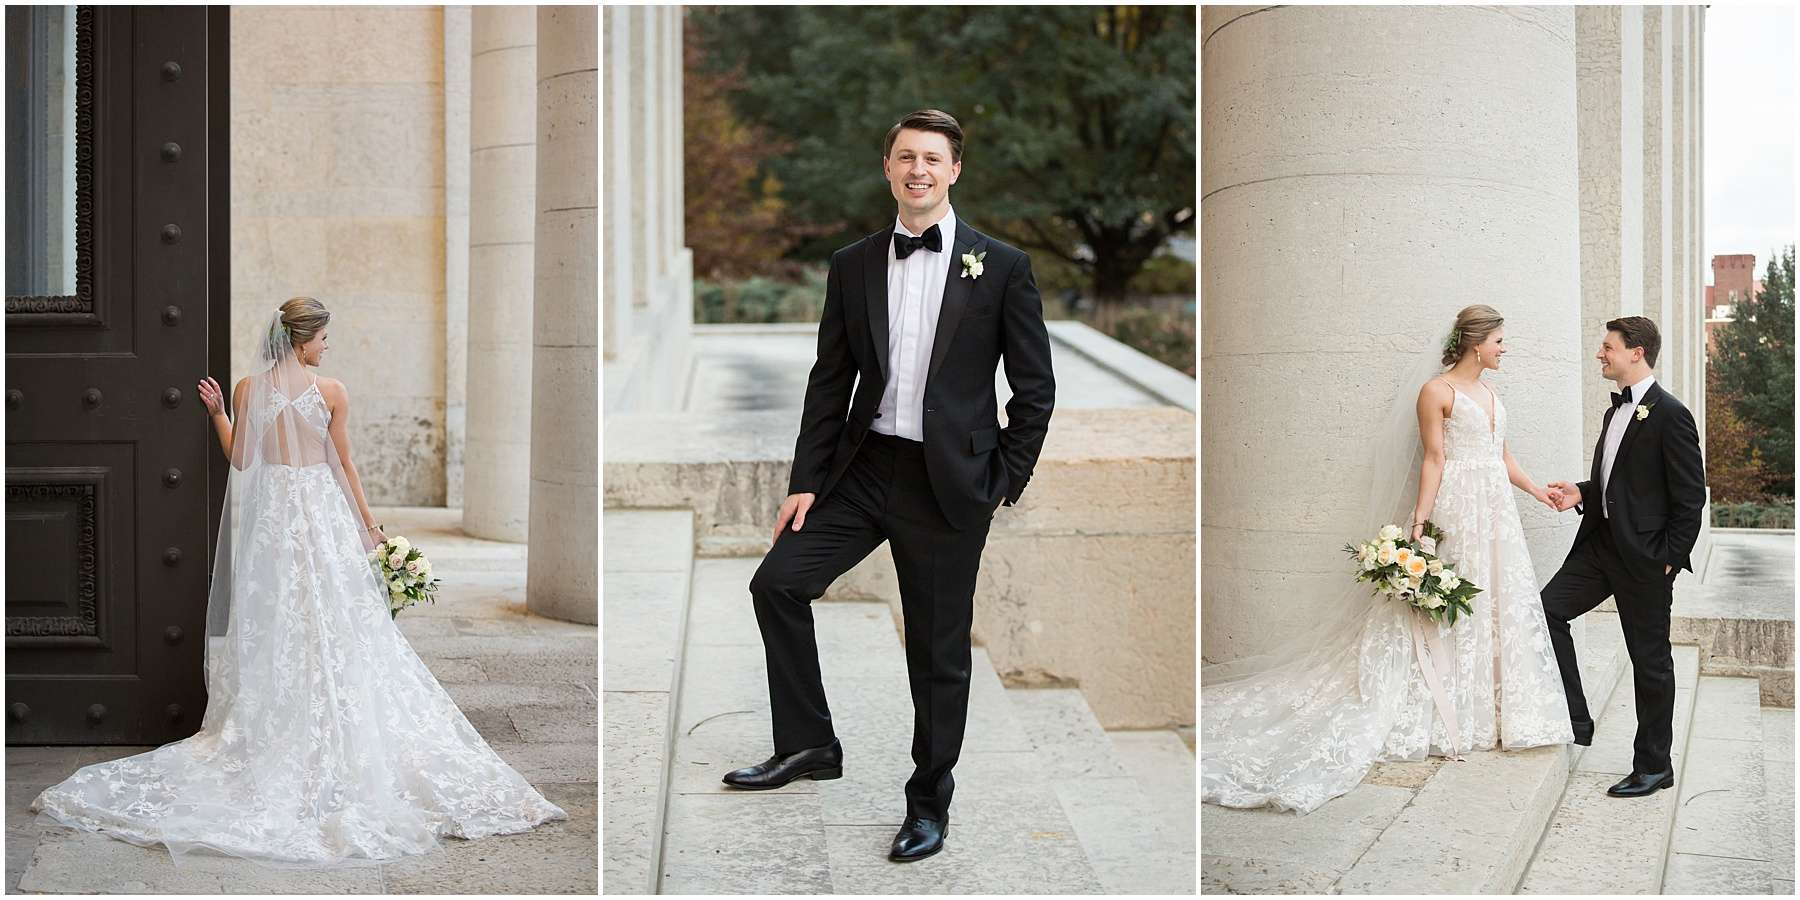 Wedding at the Ohio Statehouse | Columbus Ohio Weddings 162